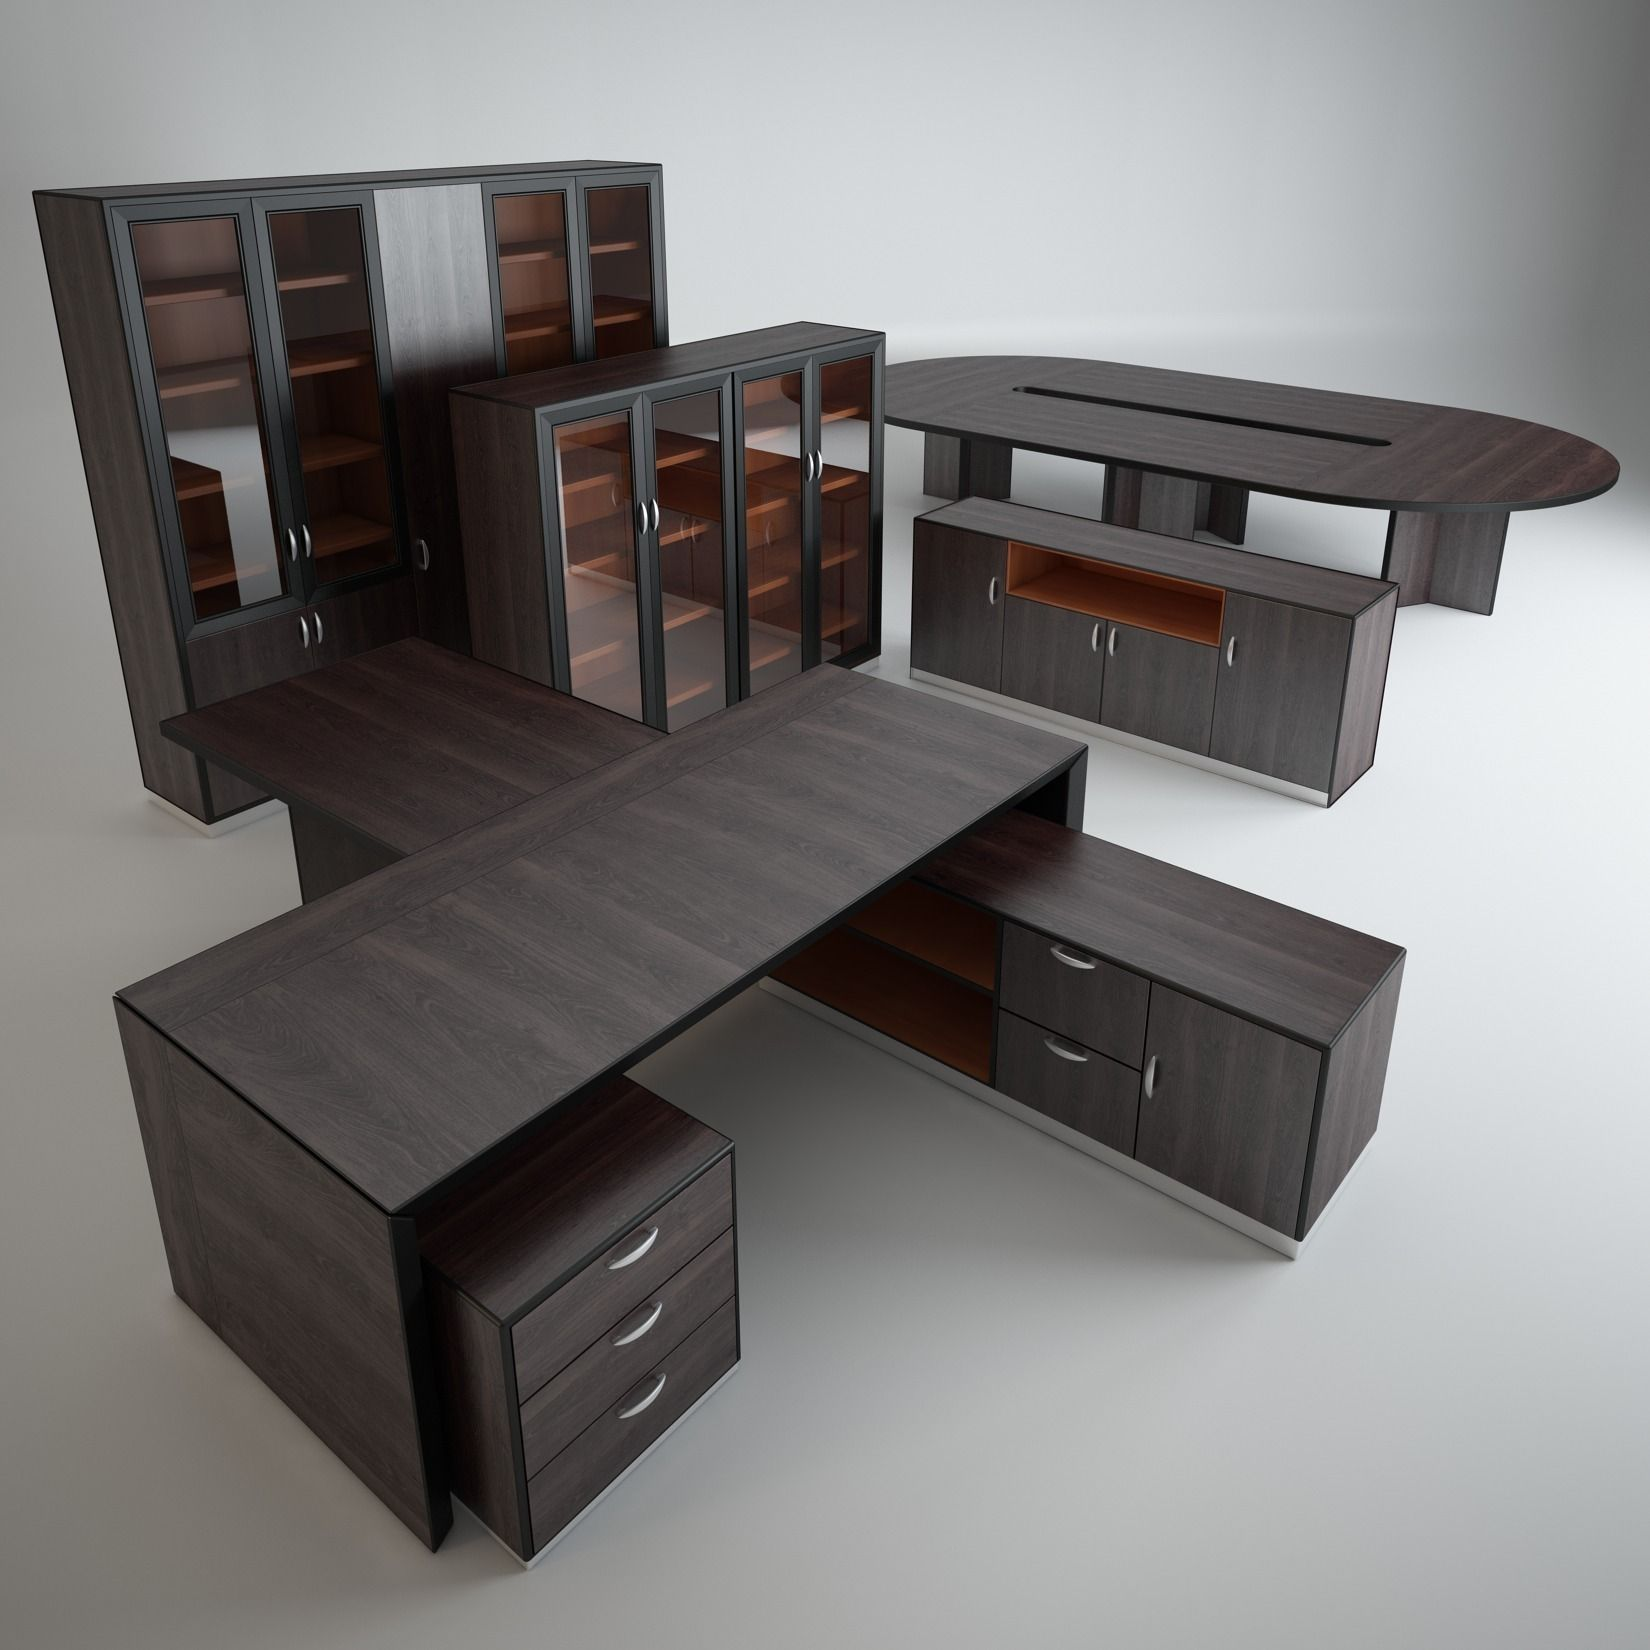 A Set Of Office Furniture Model Max Fbx 1